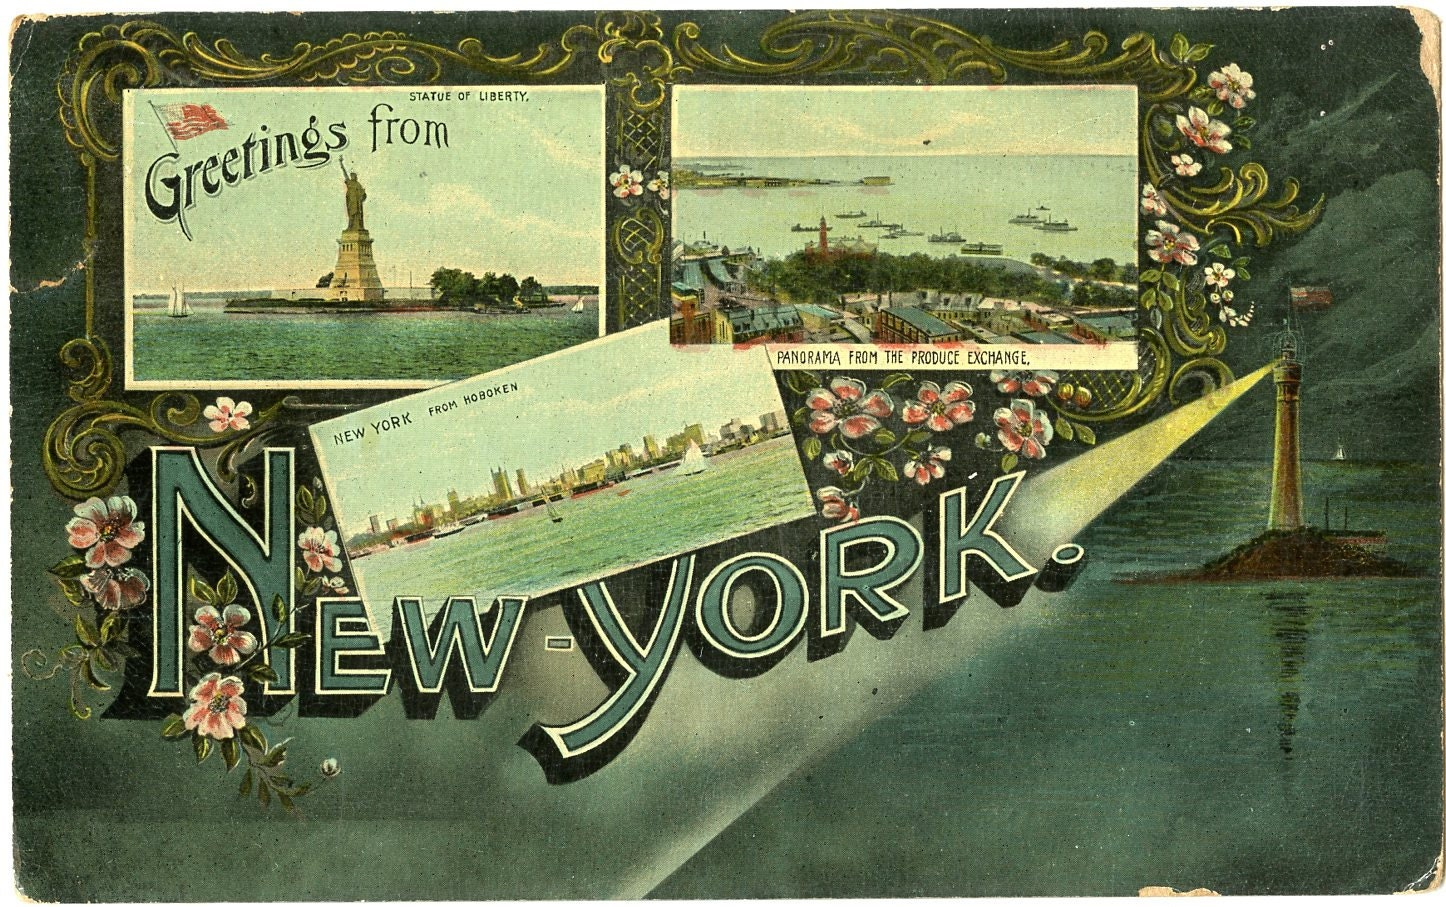 1911 greetings from new york antique postcard collectible vintage 1911 greetings from new york antique postcard collectible vintage memorabilia ephemera kristyandbryce Images